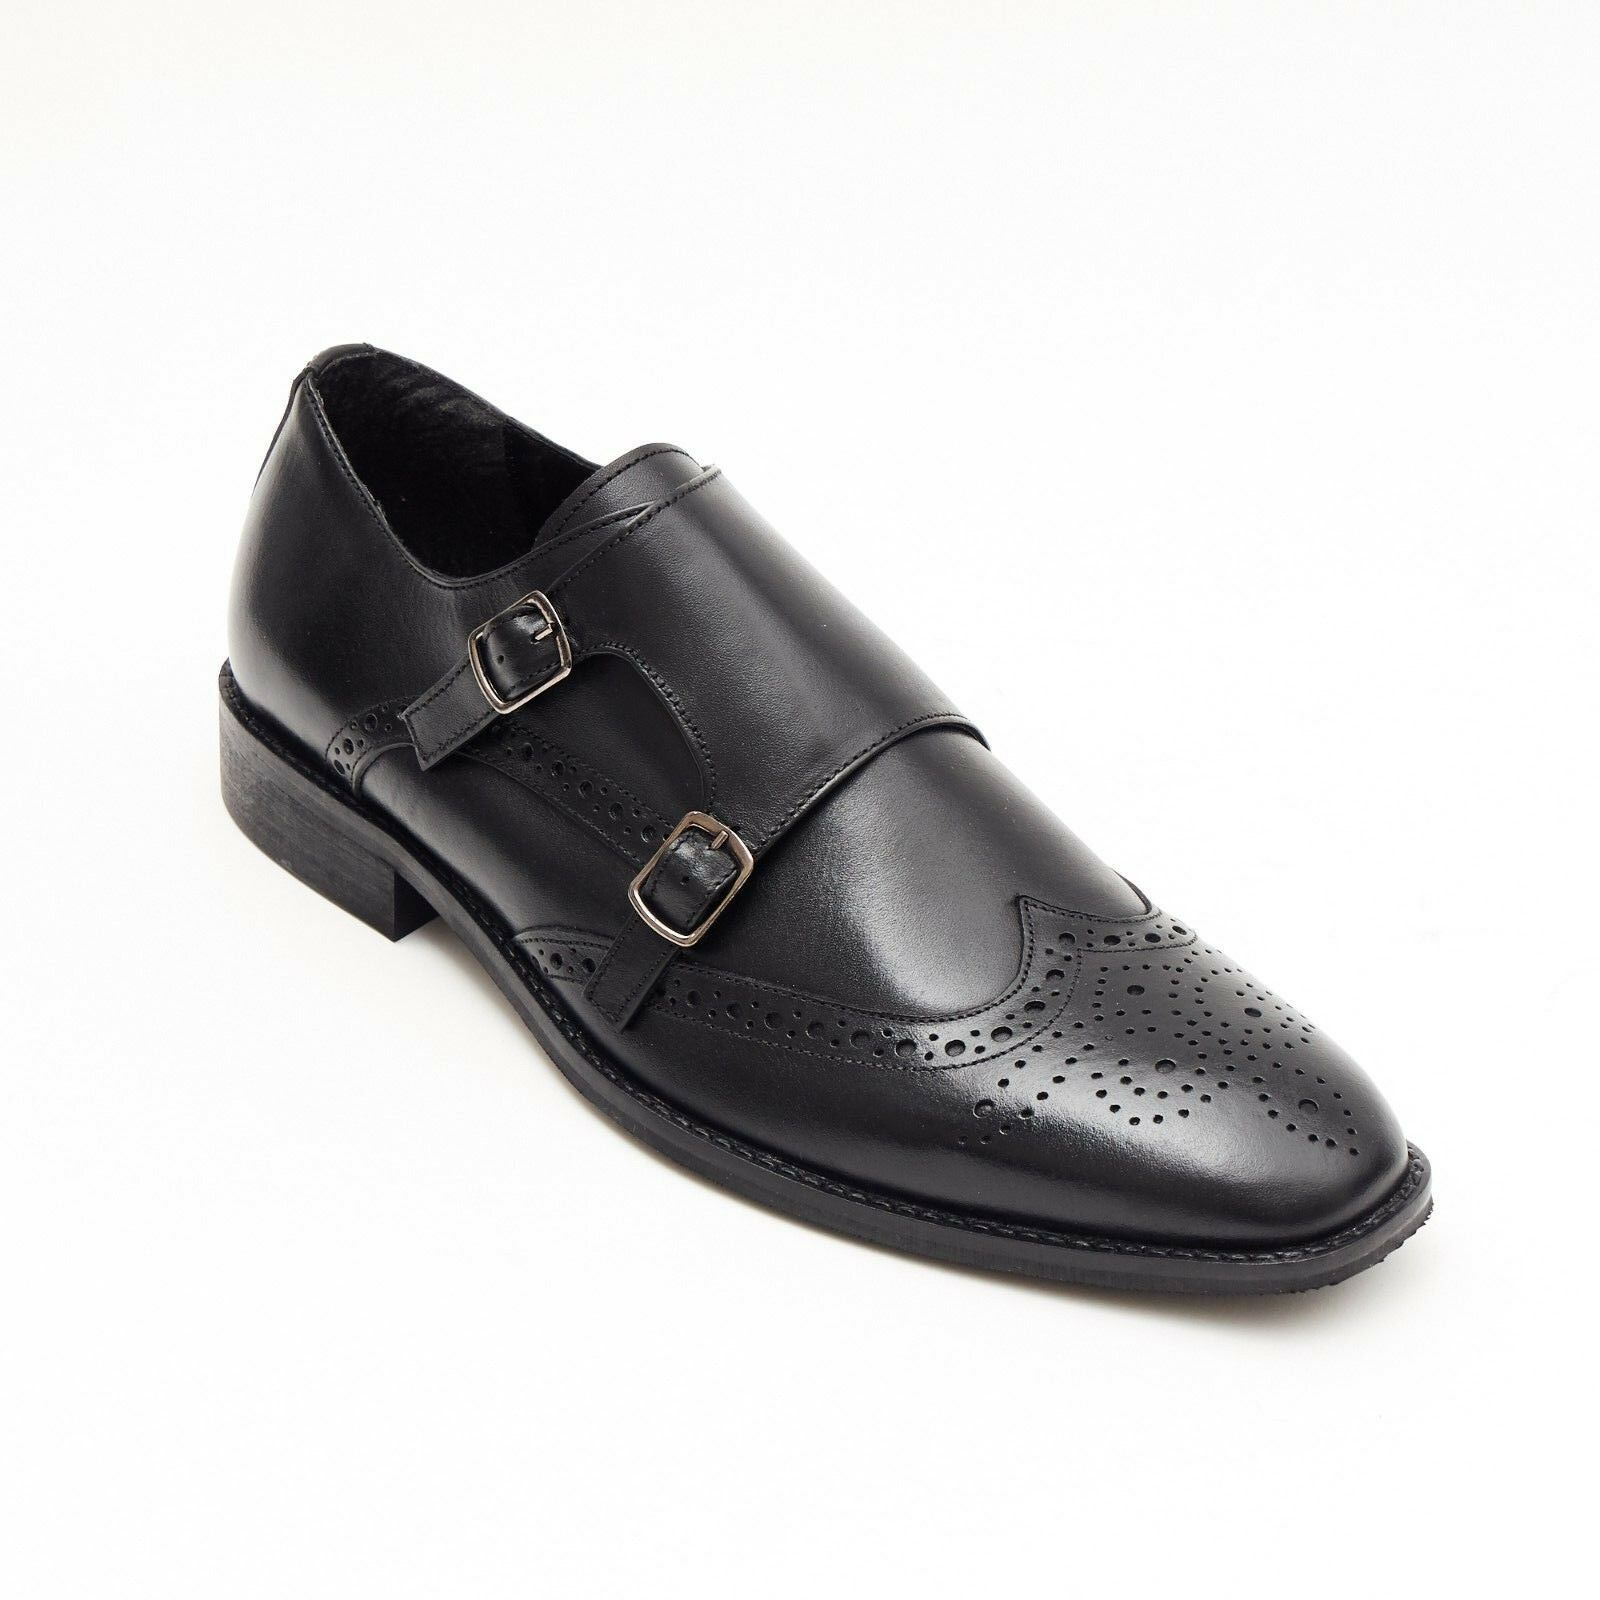 Lucini Formal Men Black Leather Brogue Formal Heels Buckle Shoes Wedding Office